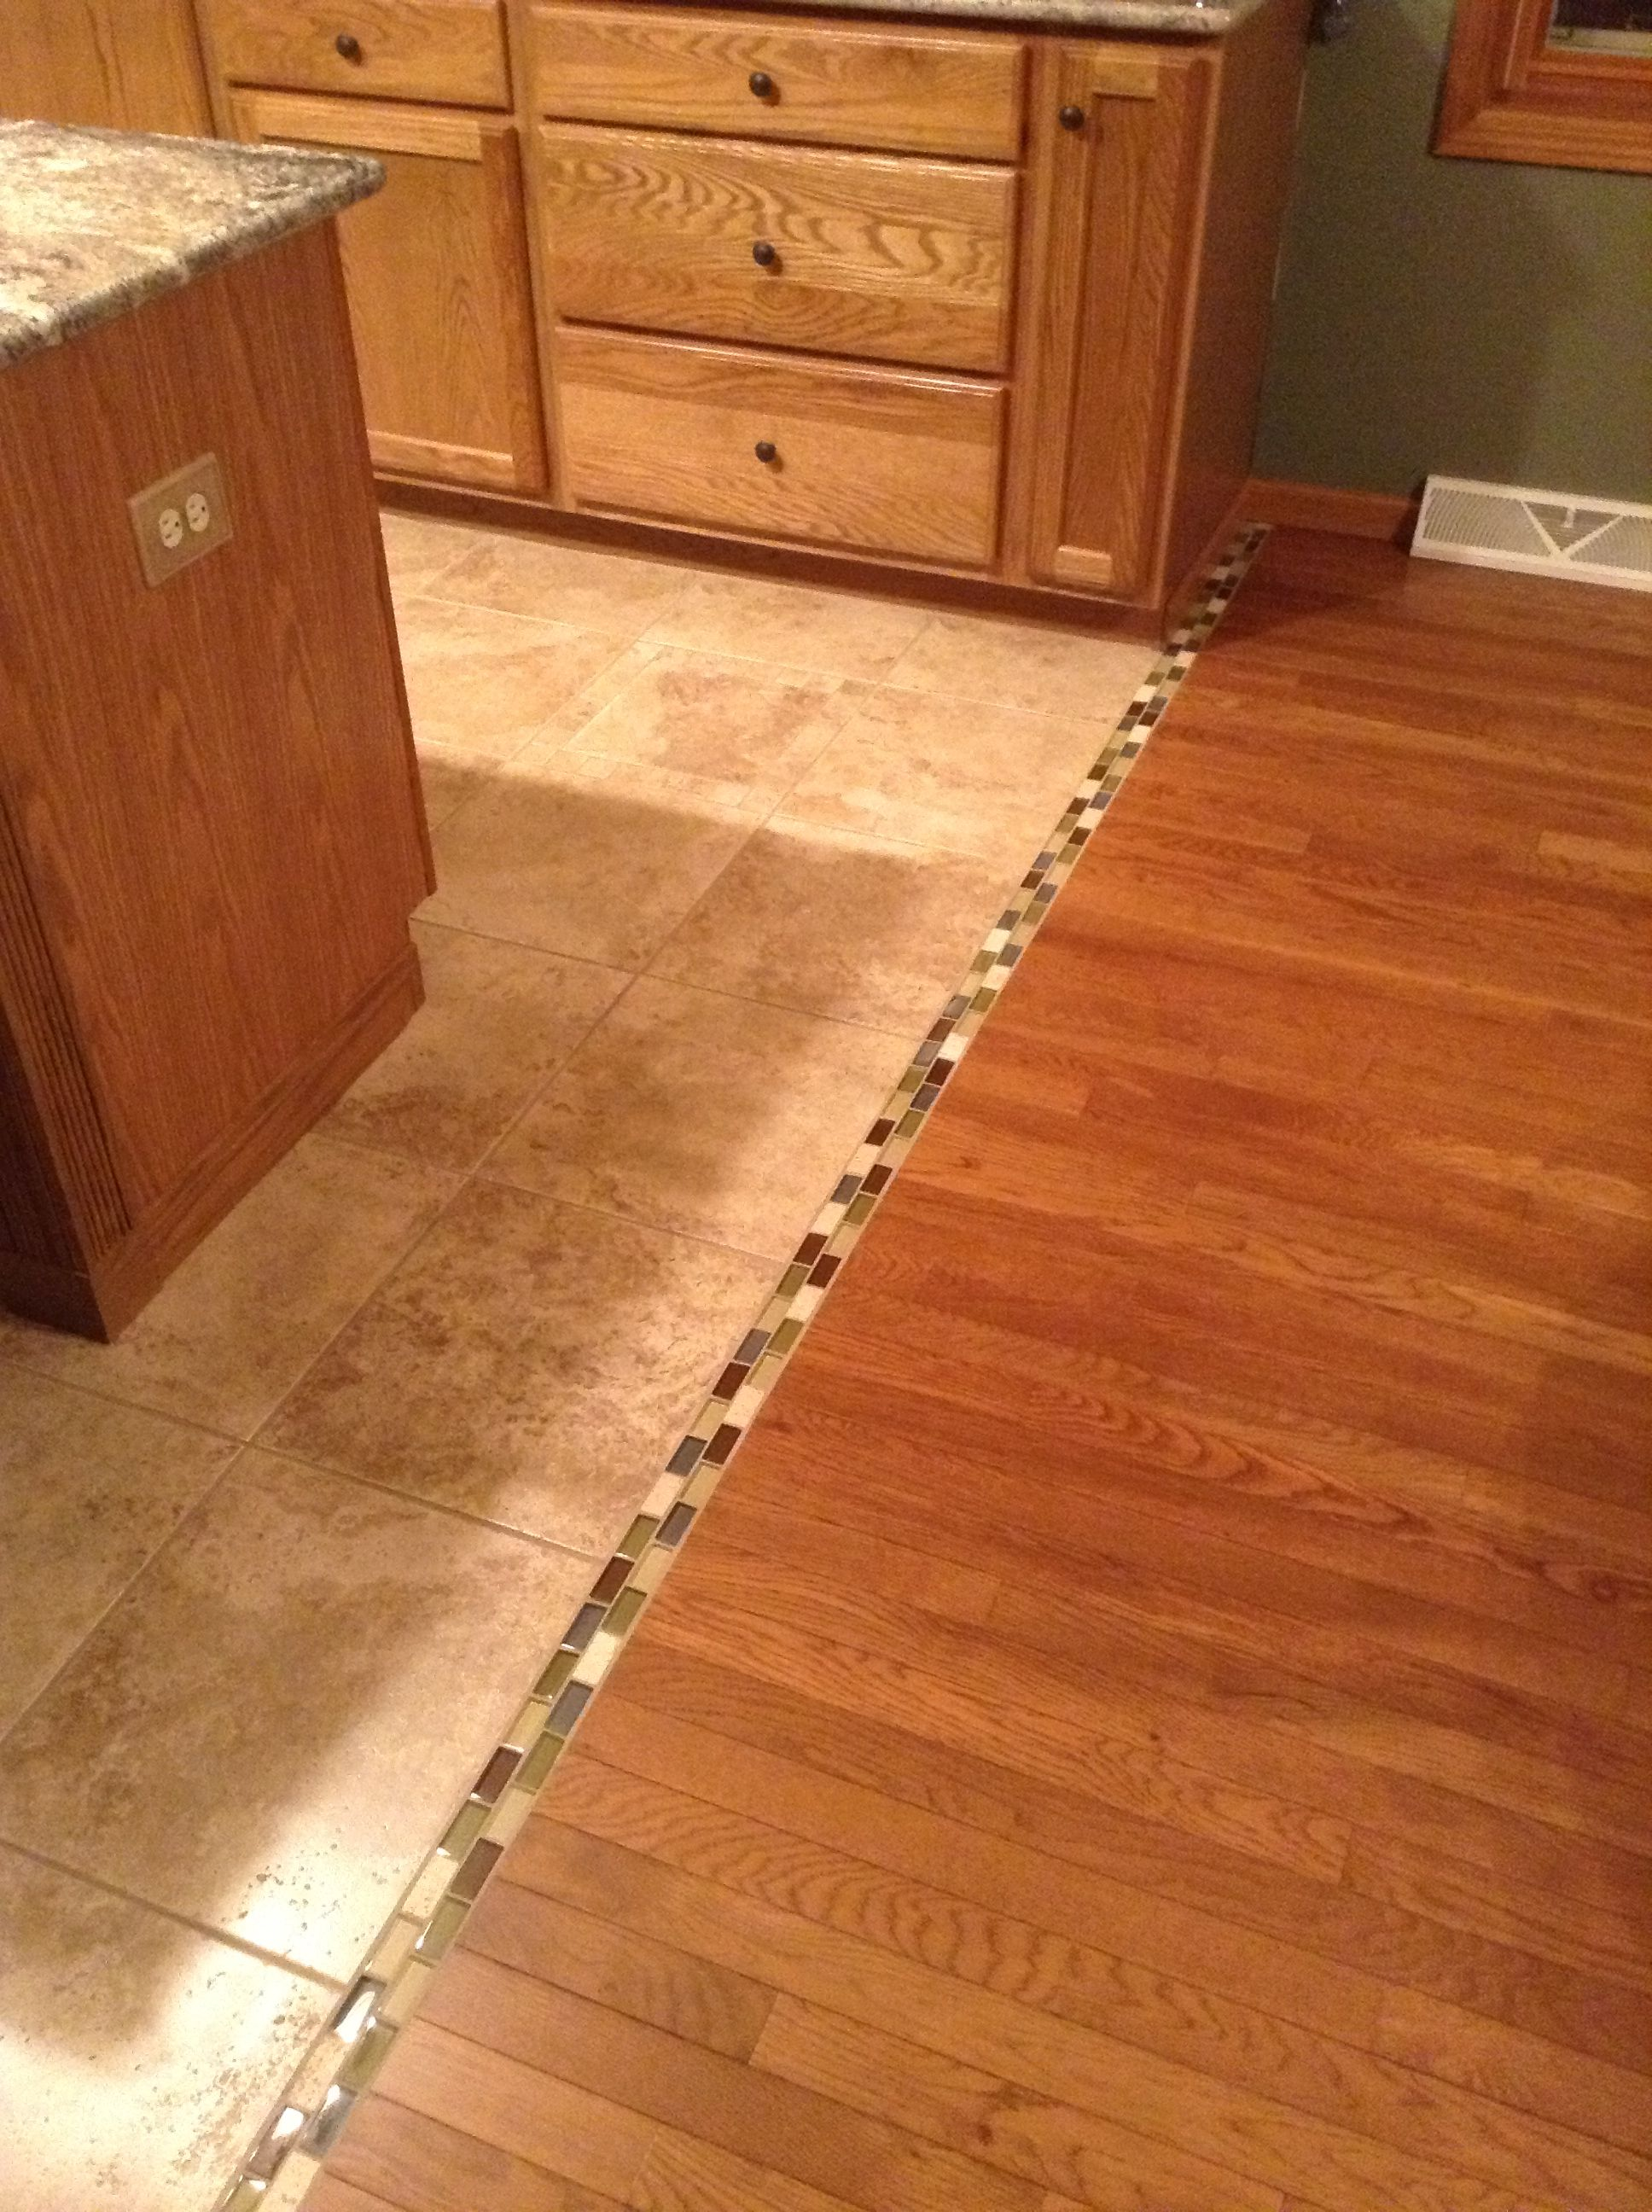 Transition between hardwood and tile floor... We should do this ...